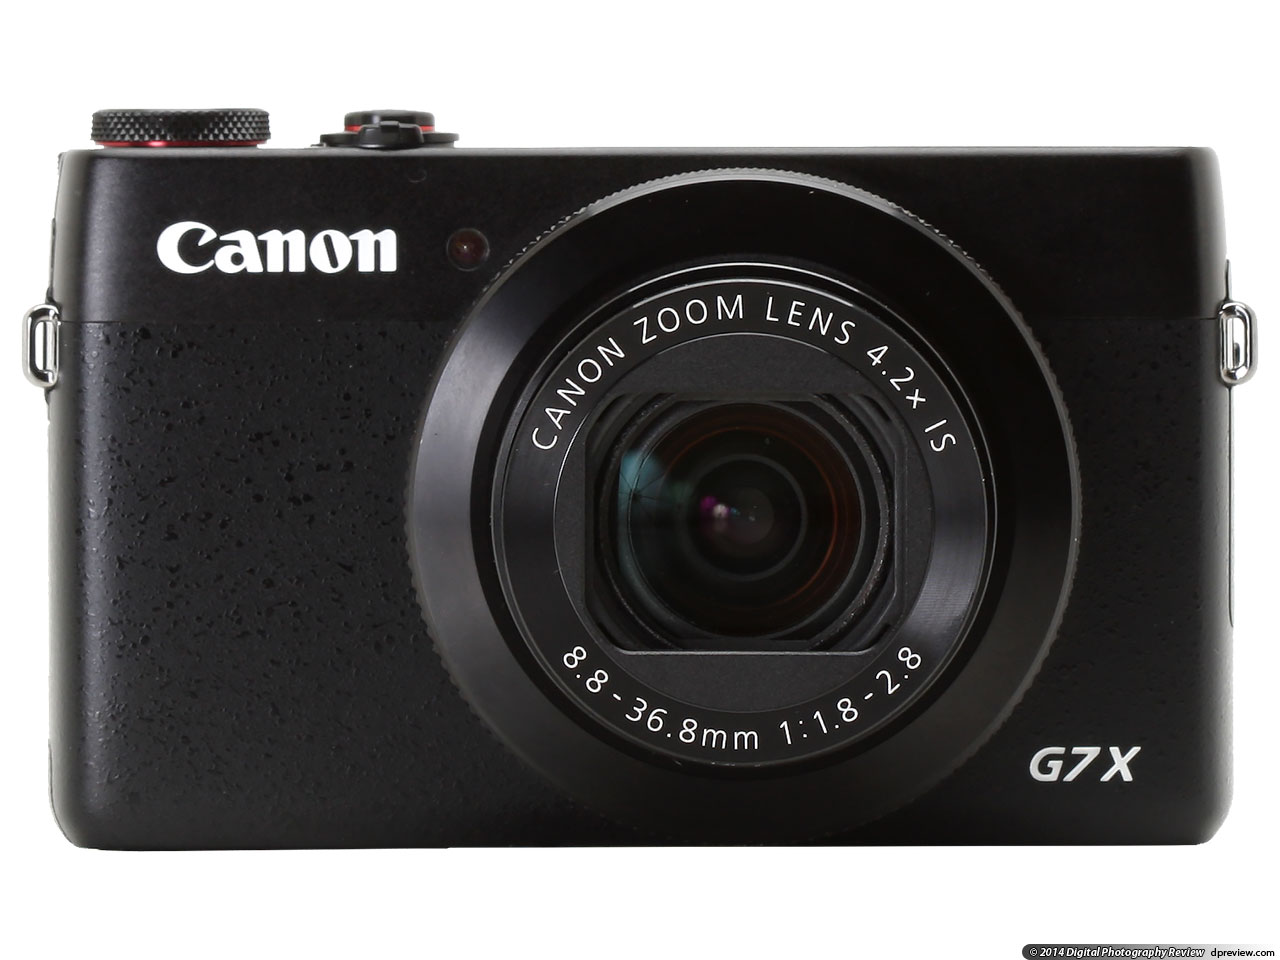 Modern Canon Powershot X Review Canon Powershot X Digital Photography Review Canon Price Watch Street Price Canon Price Watch 6d Mark Ii dpreview Canon Price Watch